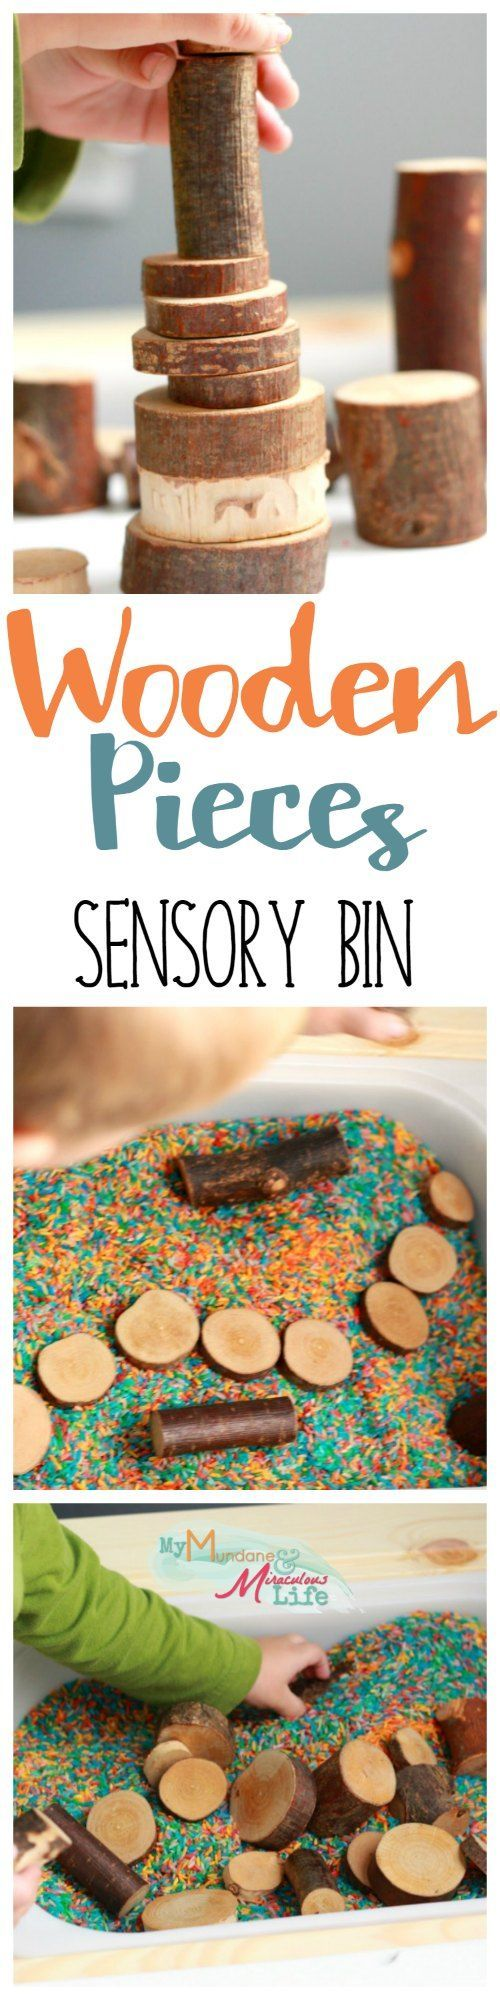 The perfect open ended Sensory Bin with natural materials. My son has played with this for hours on end!